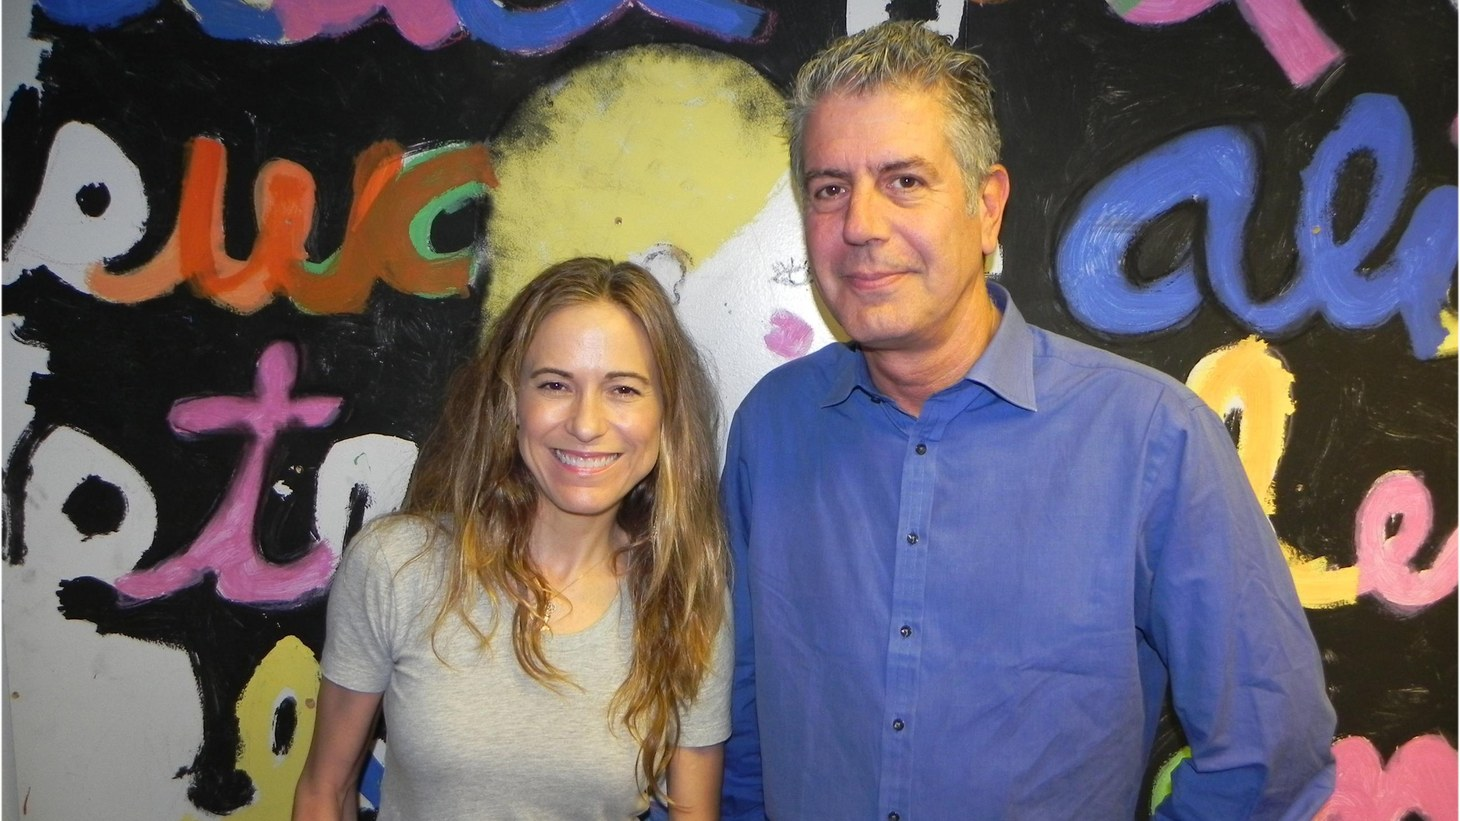 Anthony Bourdain with Liza Richardson during his KCRW's Guest DJ show in 2010.